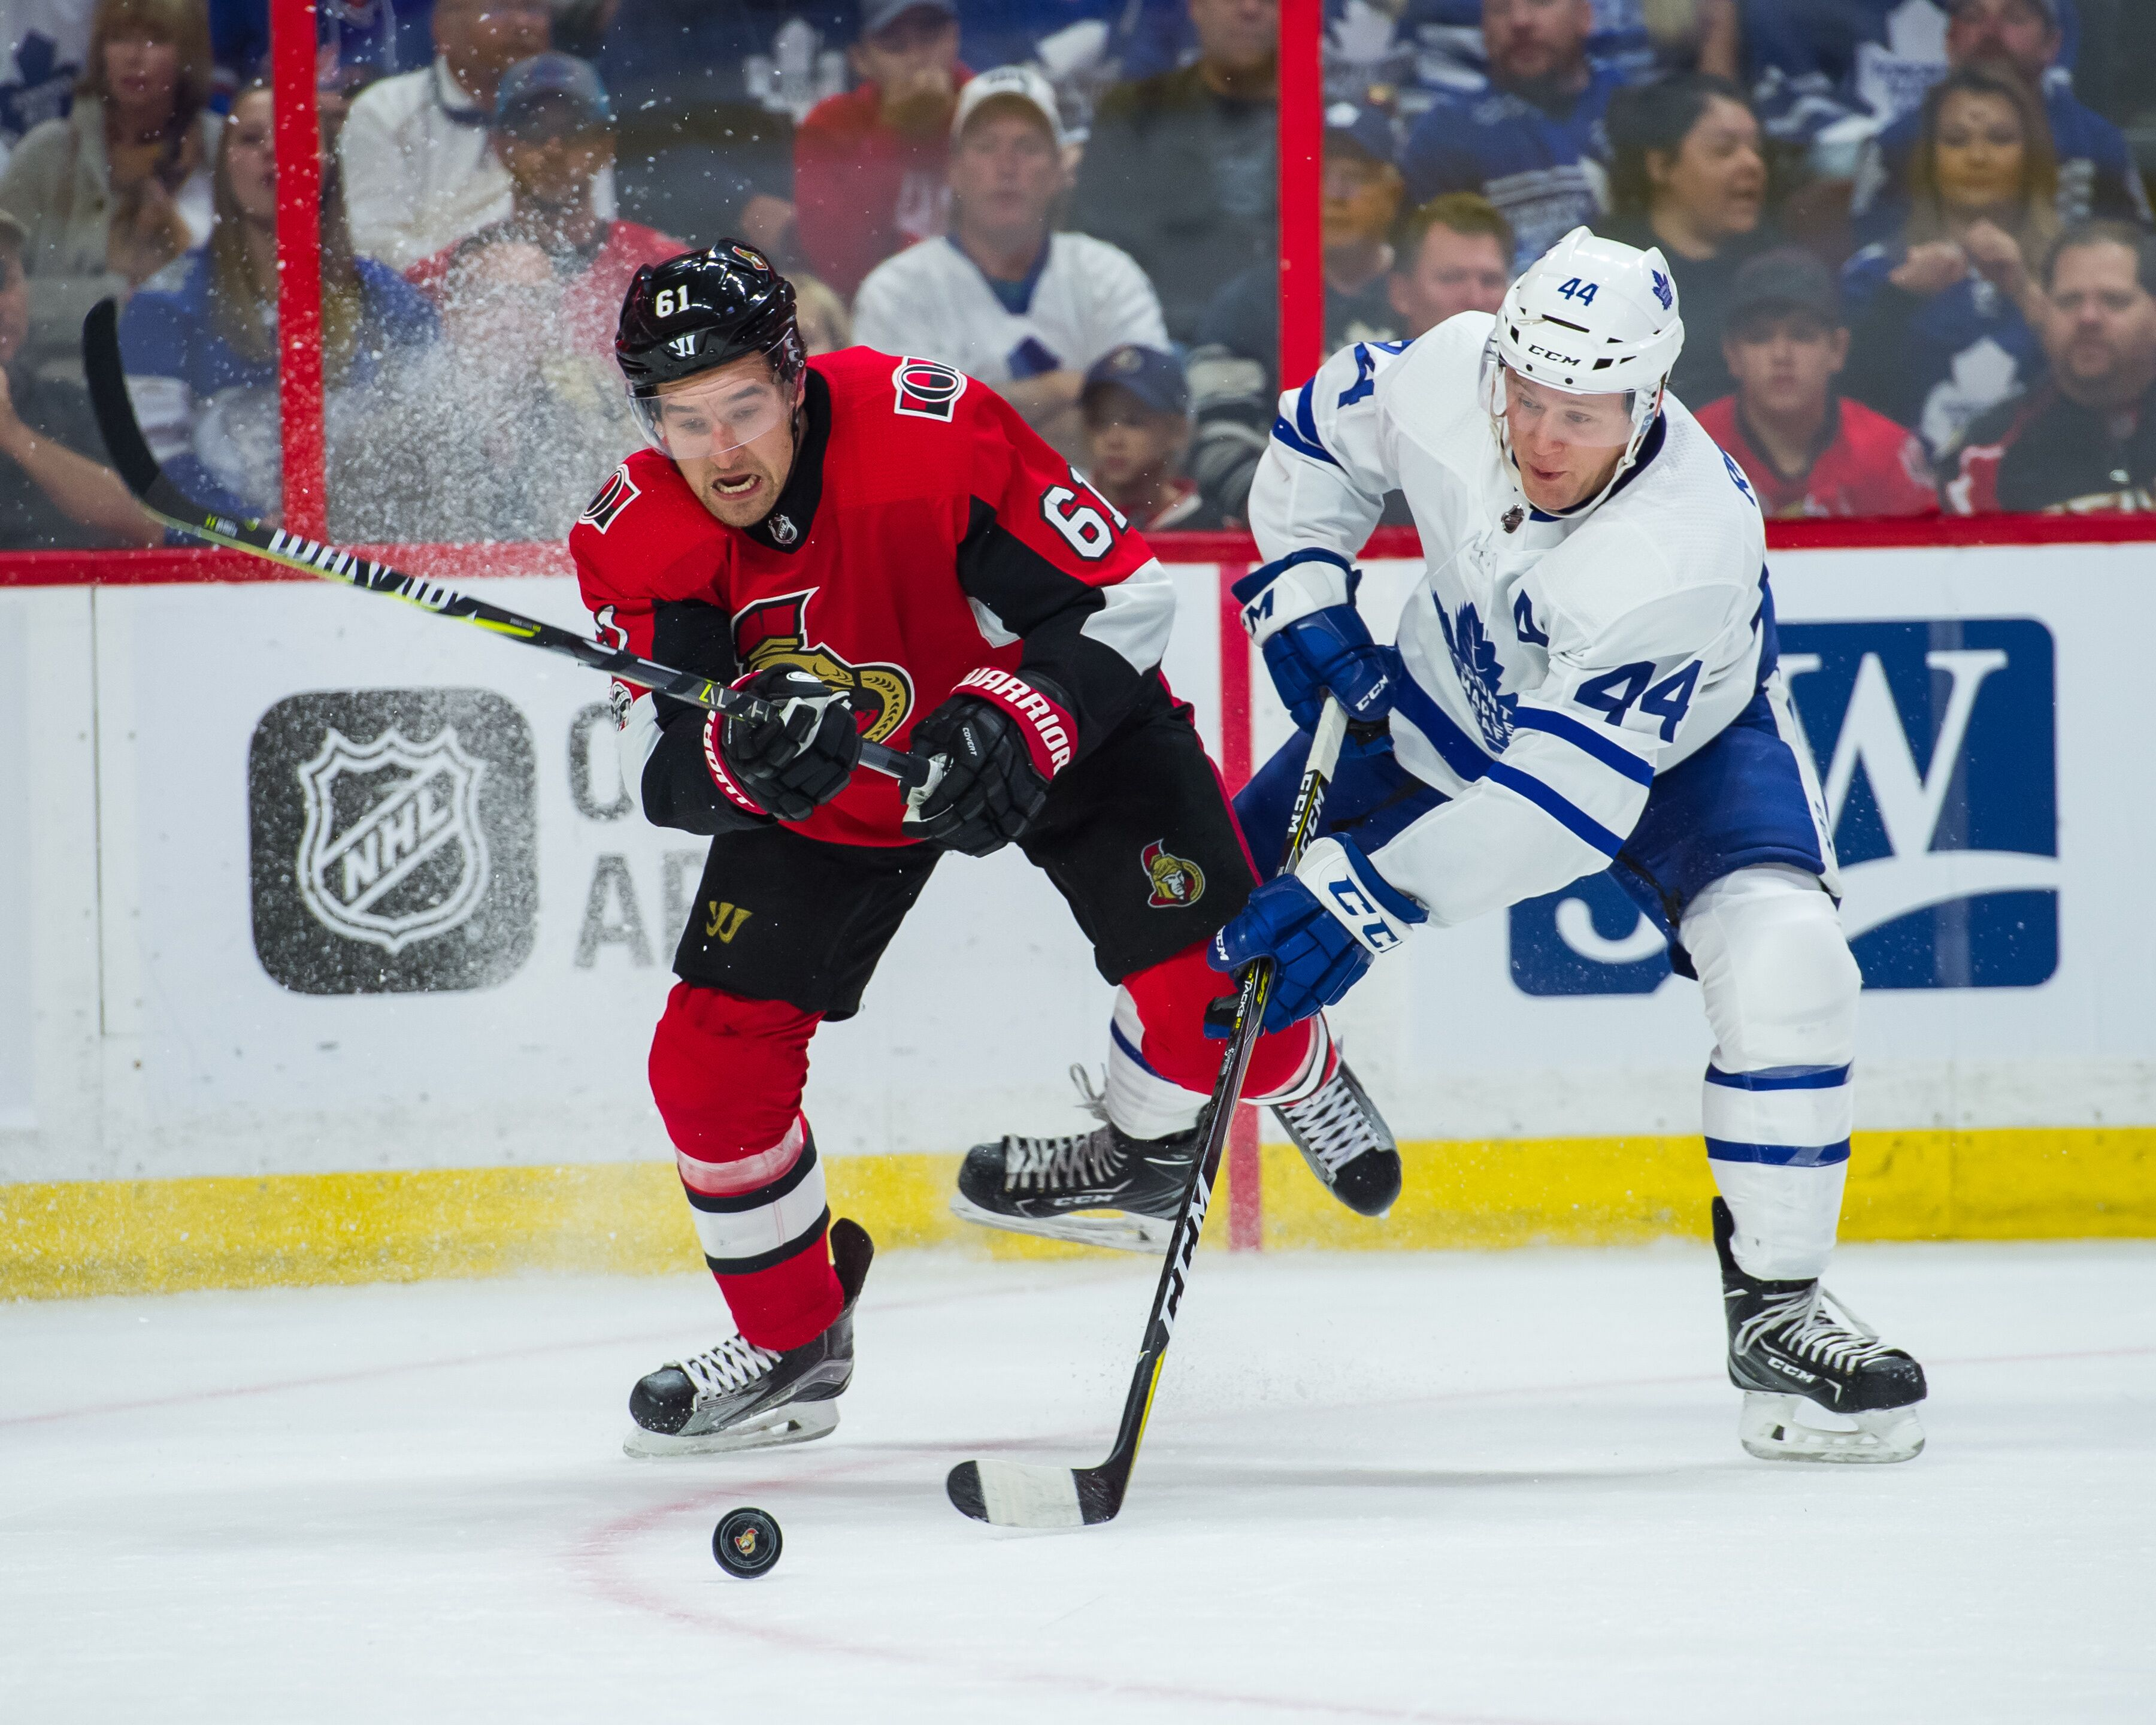 864847102-nhl-oct-21-maple-leafs-at-senators.jpg